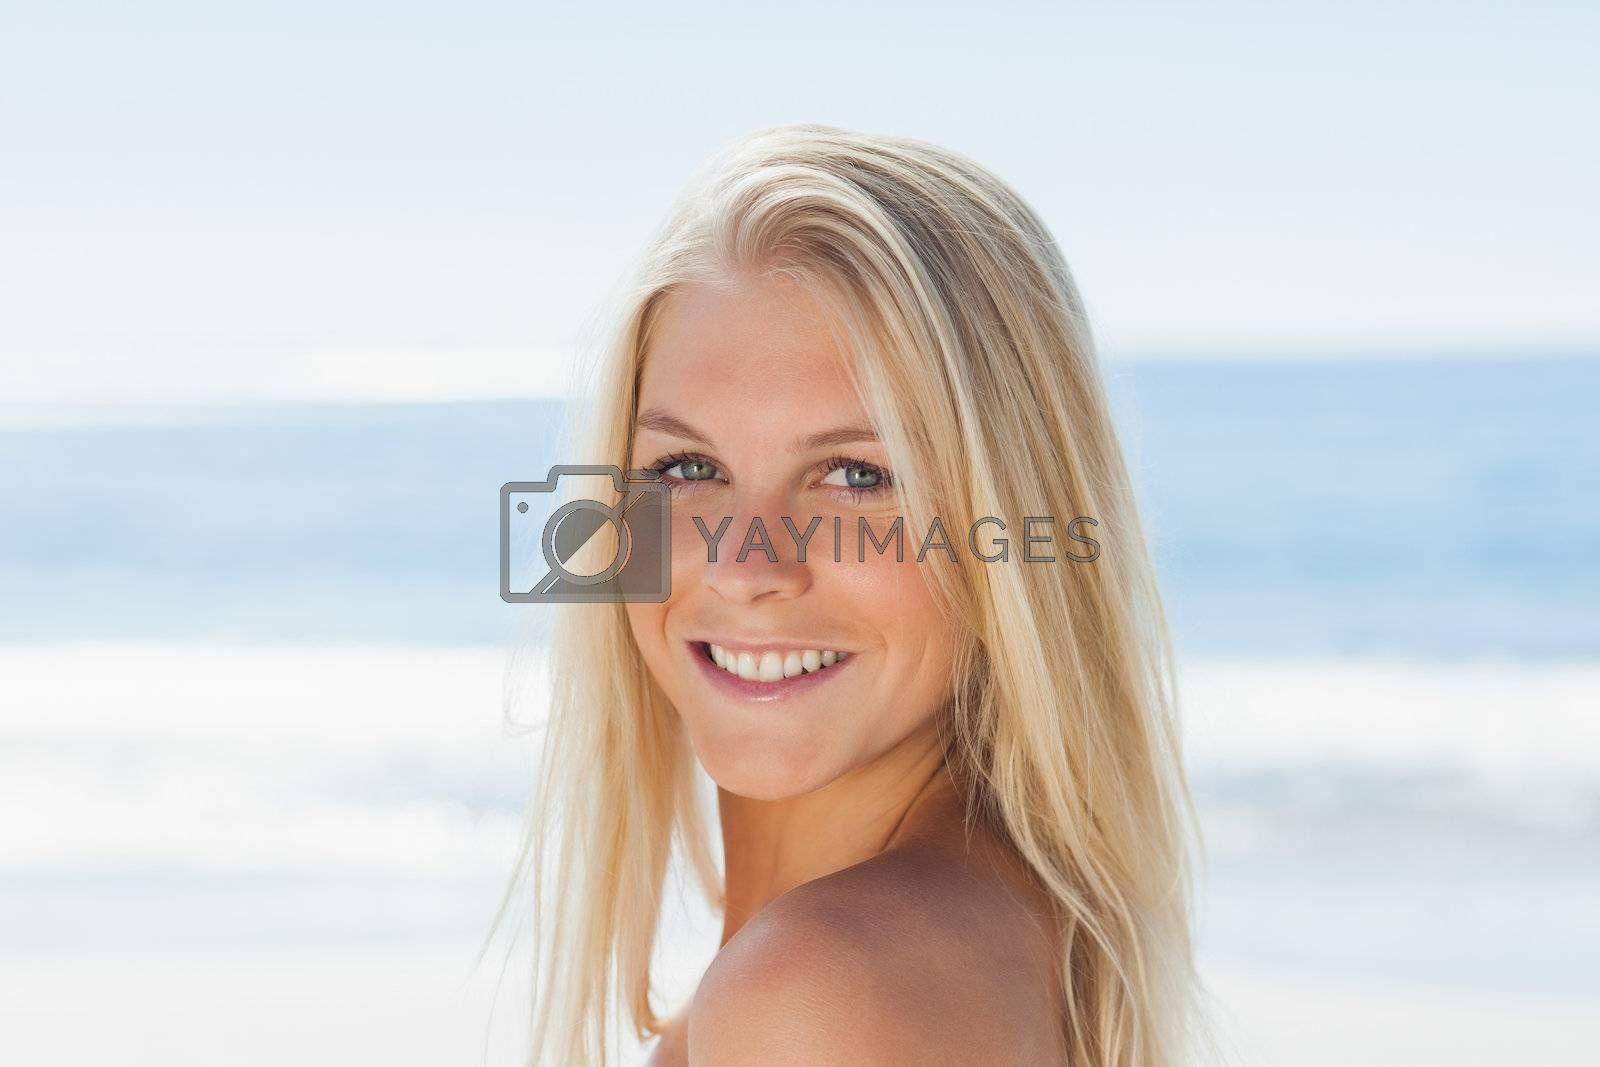 Close up view of blond woman smiling at camera by Wavebreakmedia